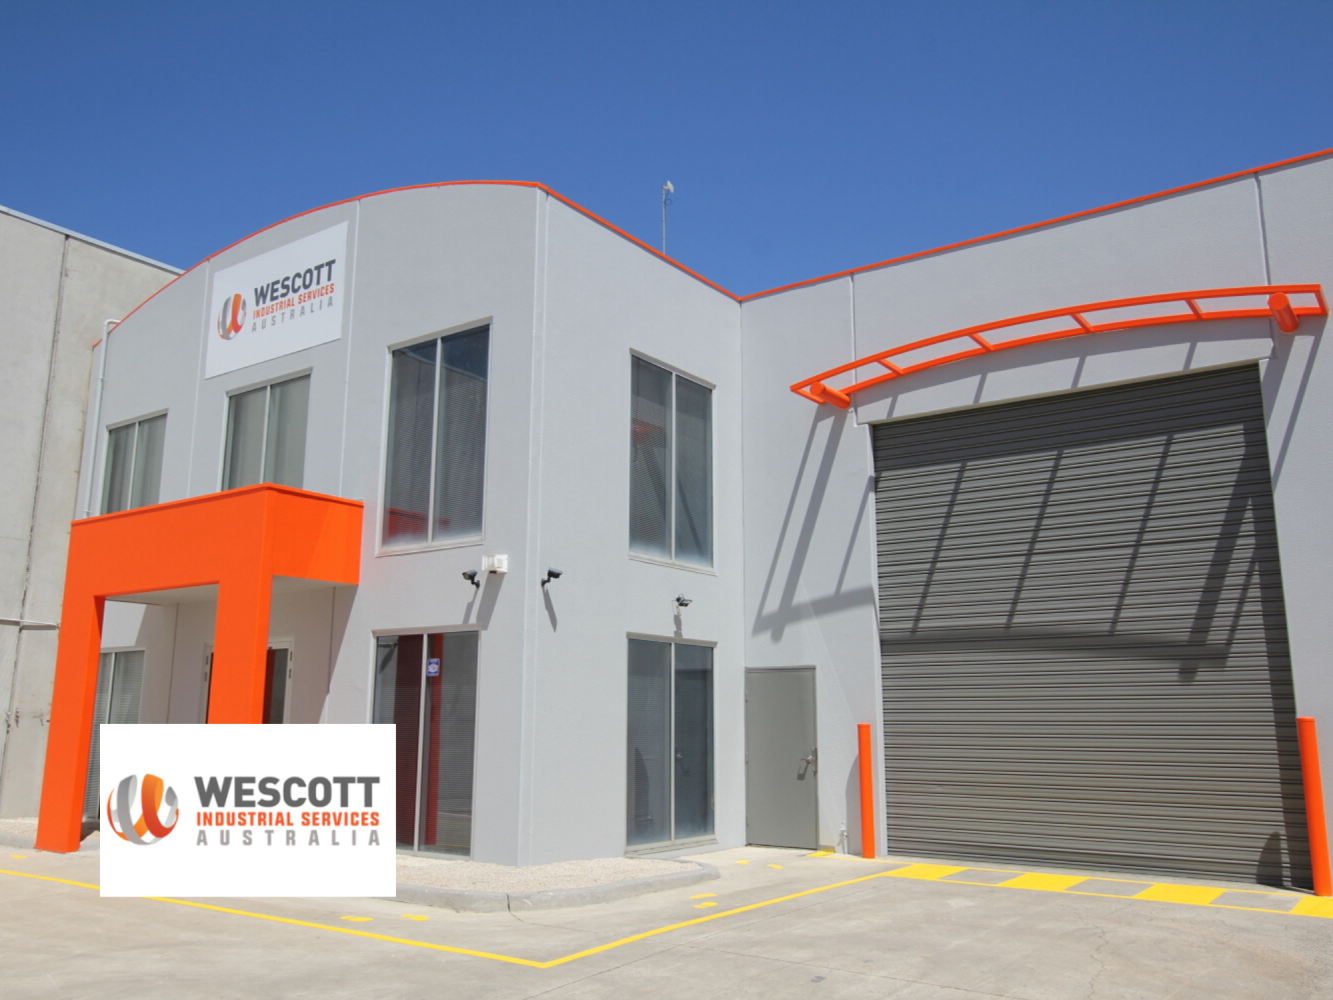 Wescott Industrial Services